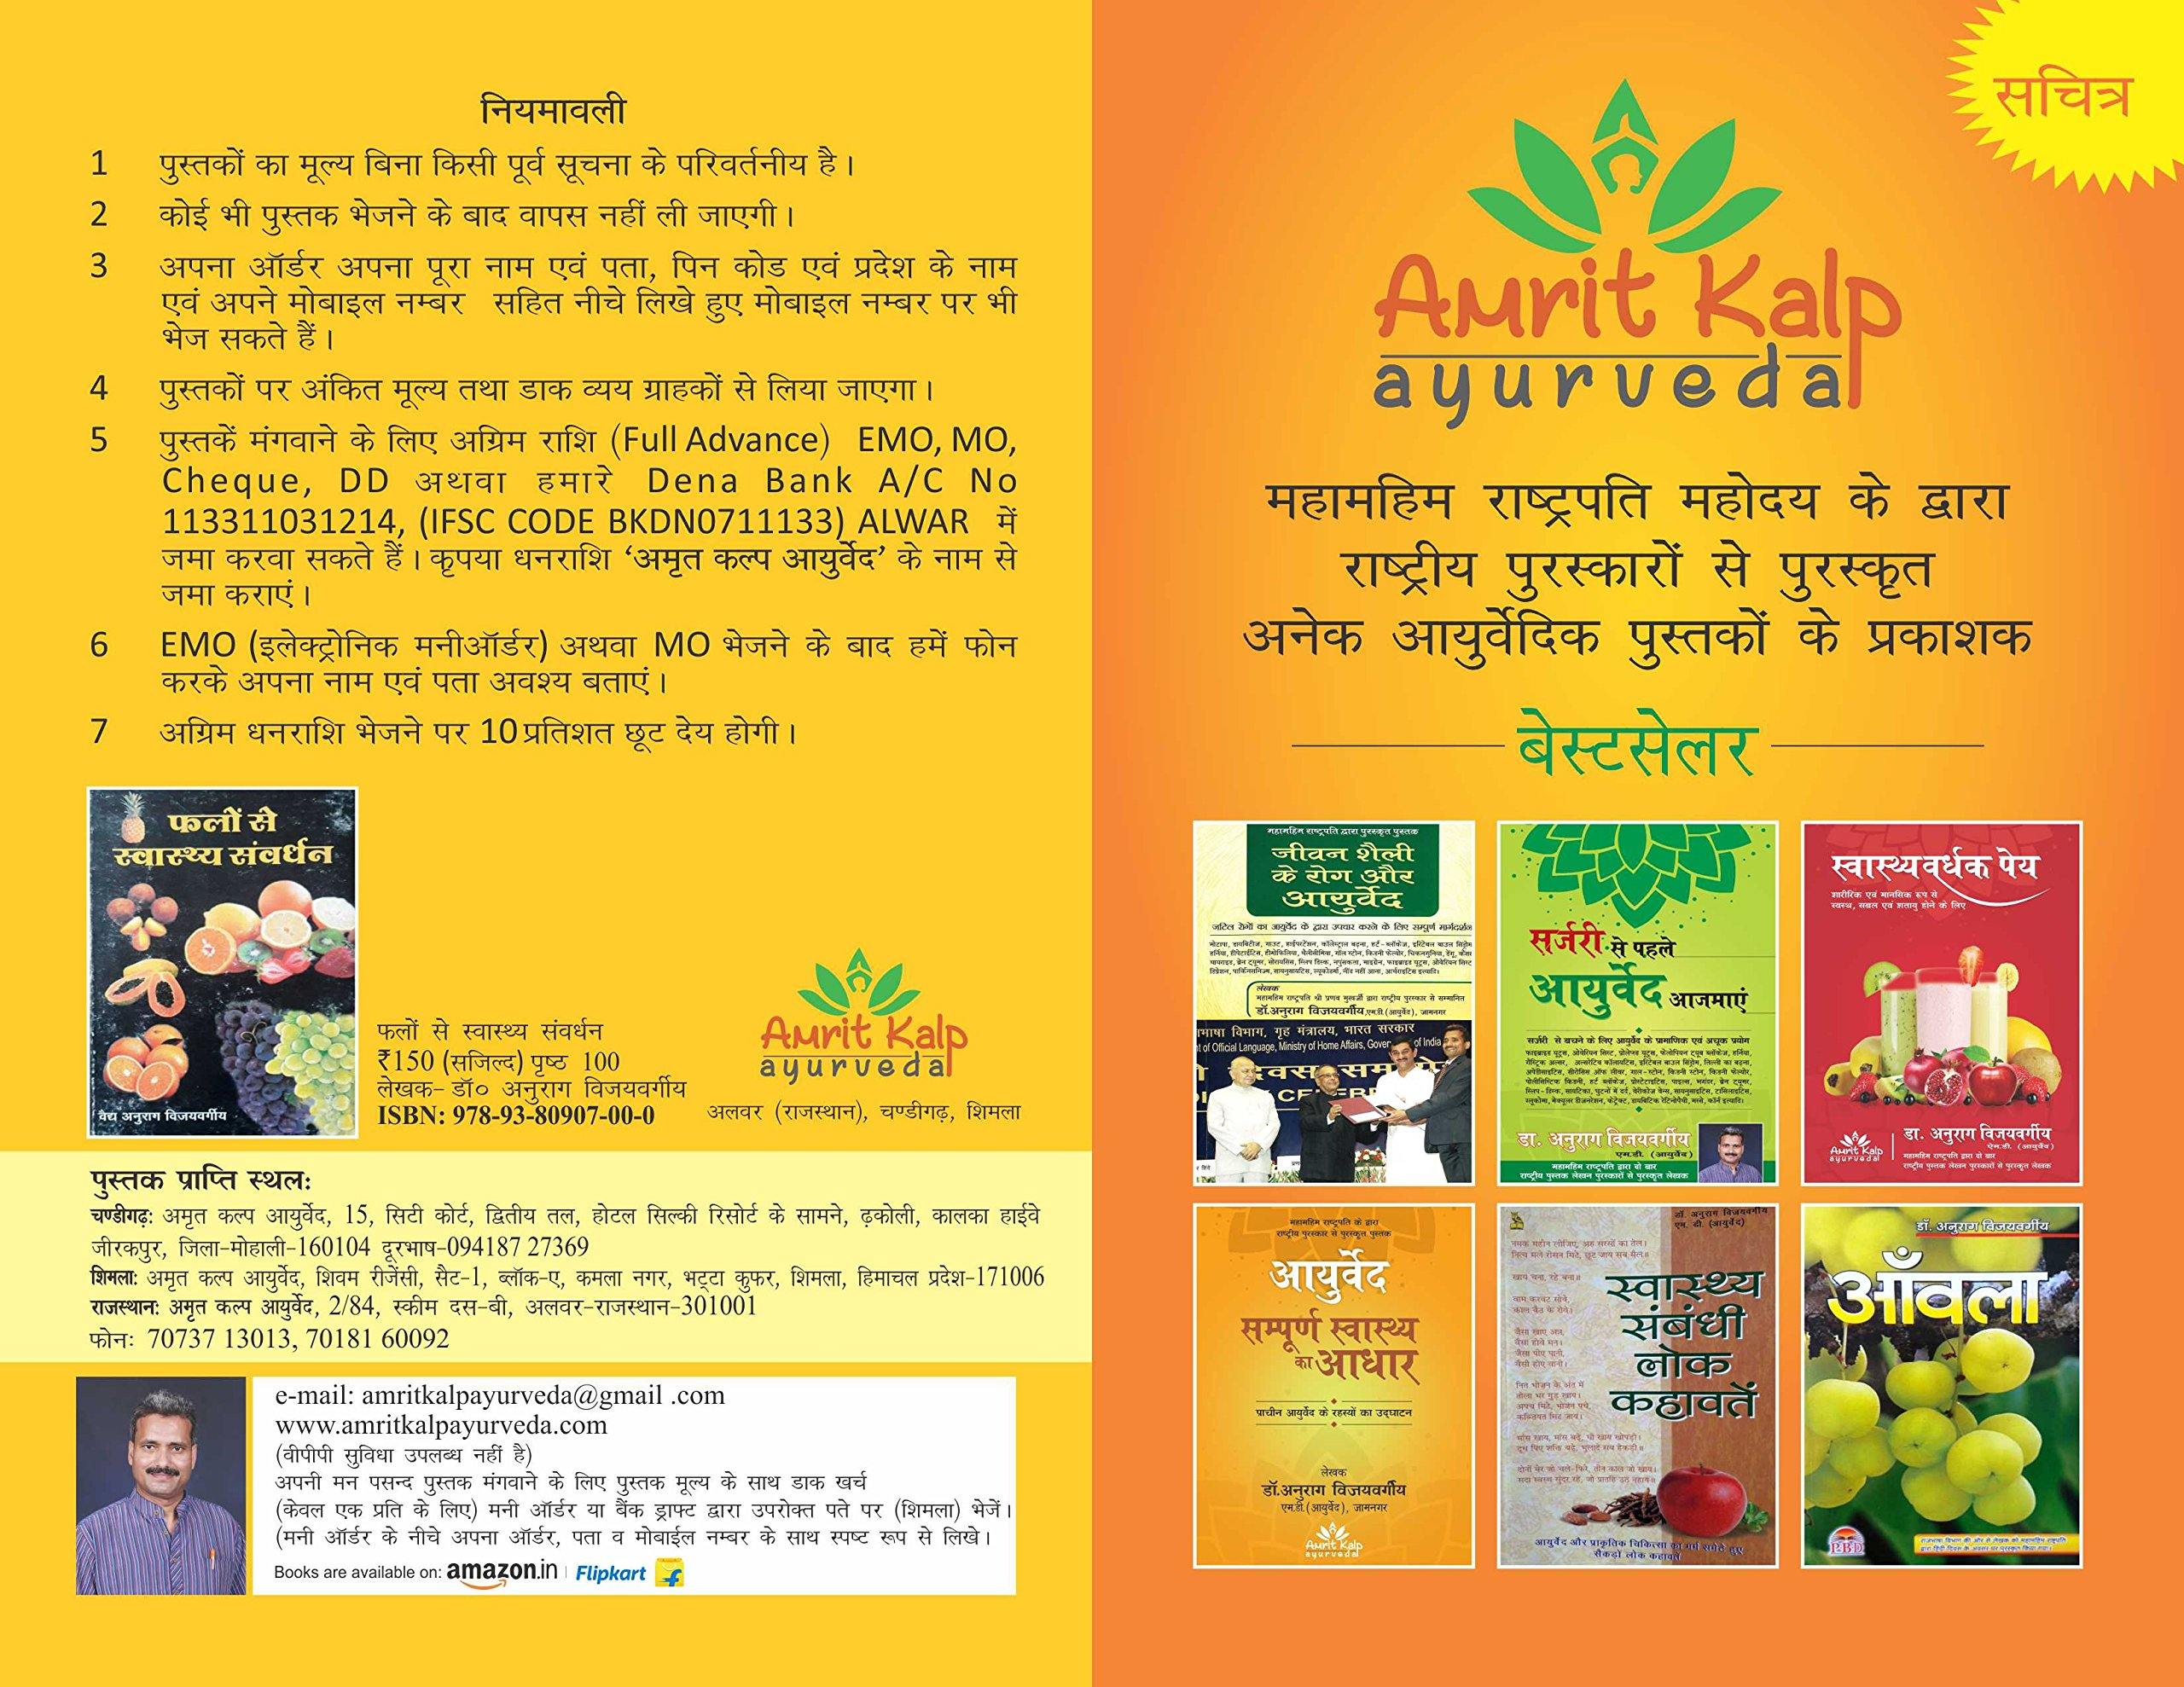 Buy SURGERY SE PAHLE AYURVEDA AJMAEN Book Online at Low Prices in